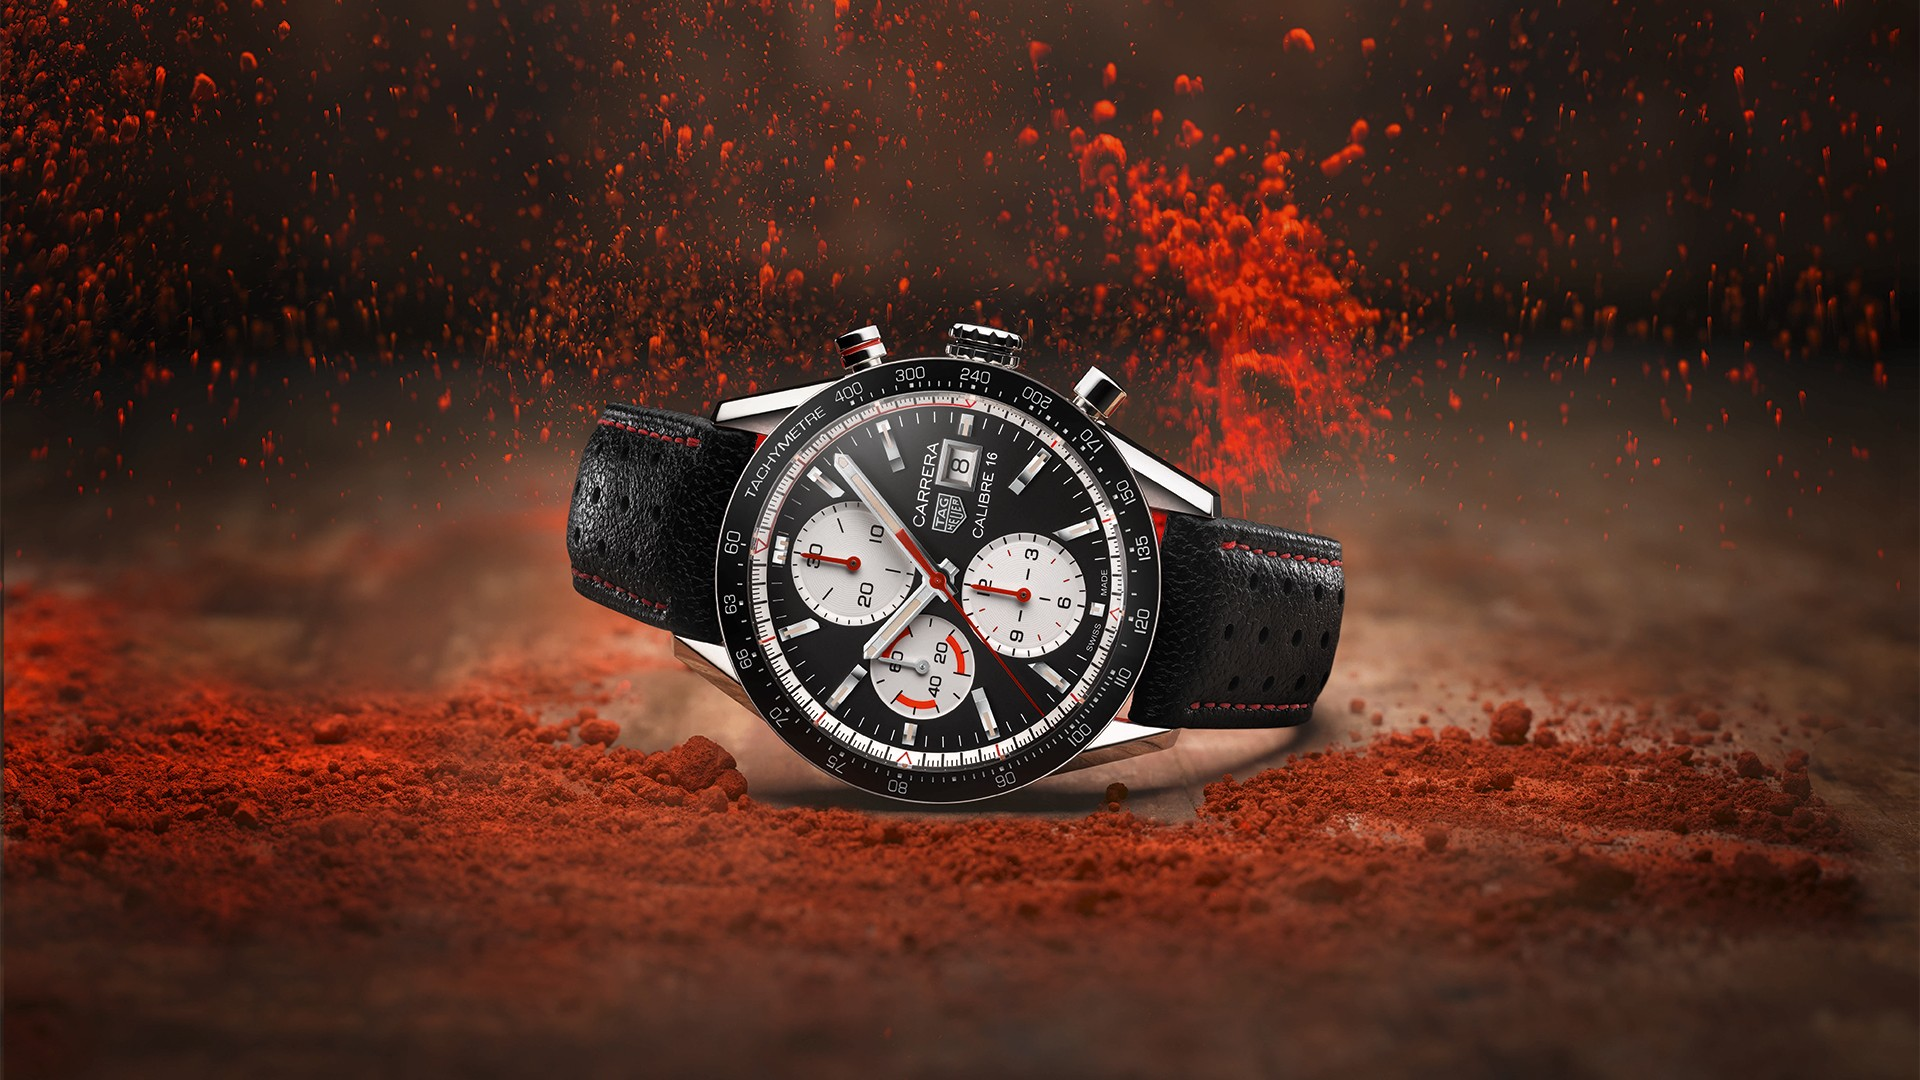 Tag Heuer Carrera Calibre 16 Chronograph watch Baselworld 2018